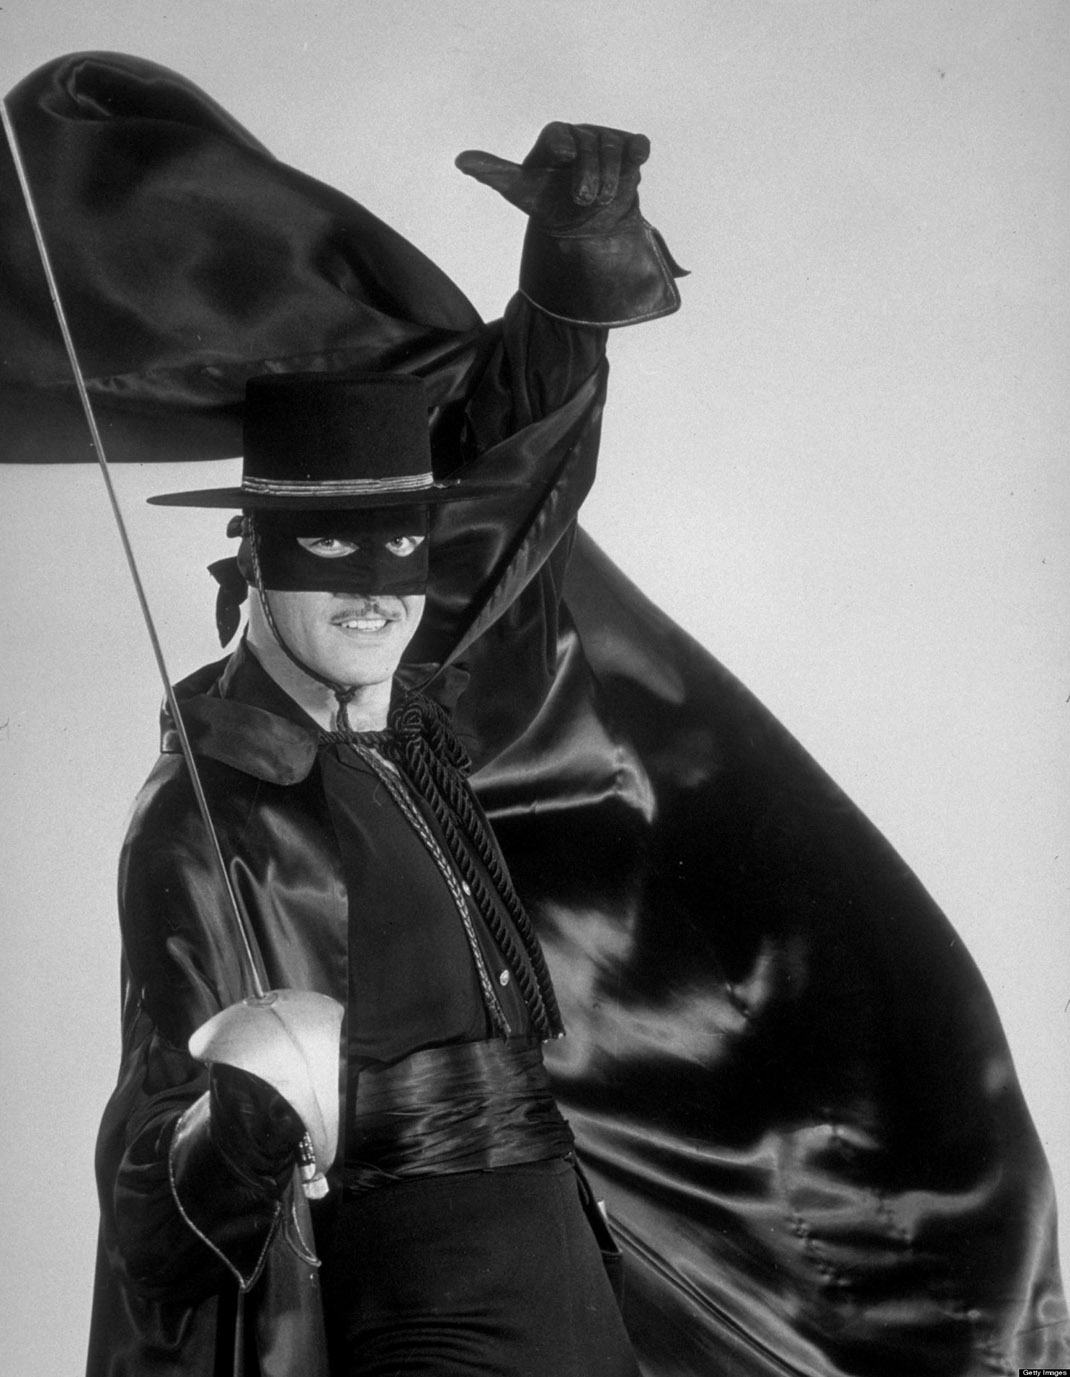 ZORRO - gallery - 10/3/57 Guy Williams played Don Diego de la Vega/Zorro, the swashbuckling masked hero who donned mask and sword to aid the oppressed. (ABC PHOTO ARCHIVES)